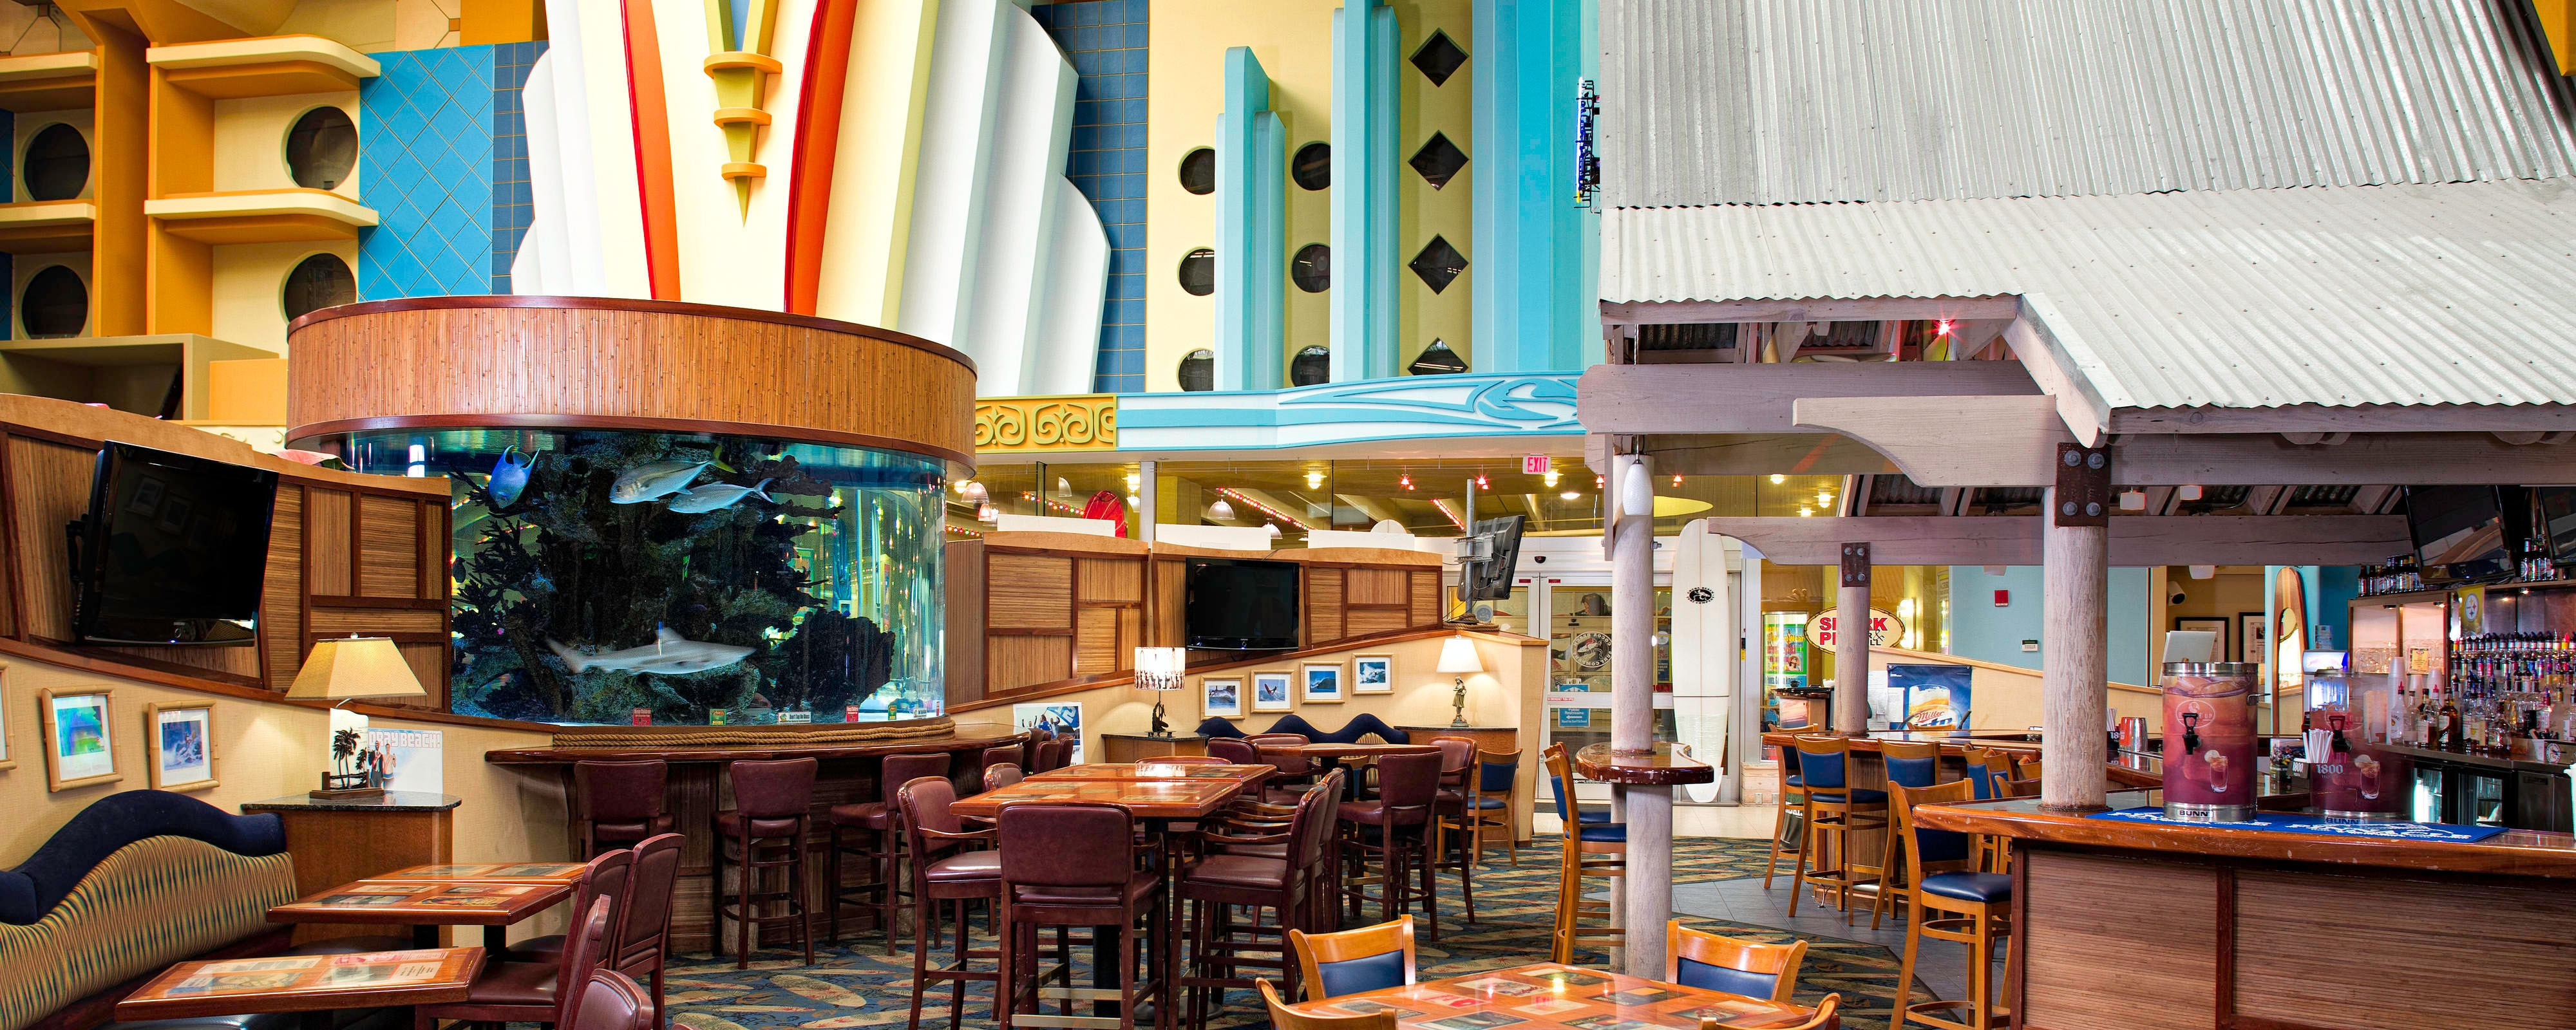 Cocoa Beach Hotel Dining Restaurants